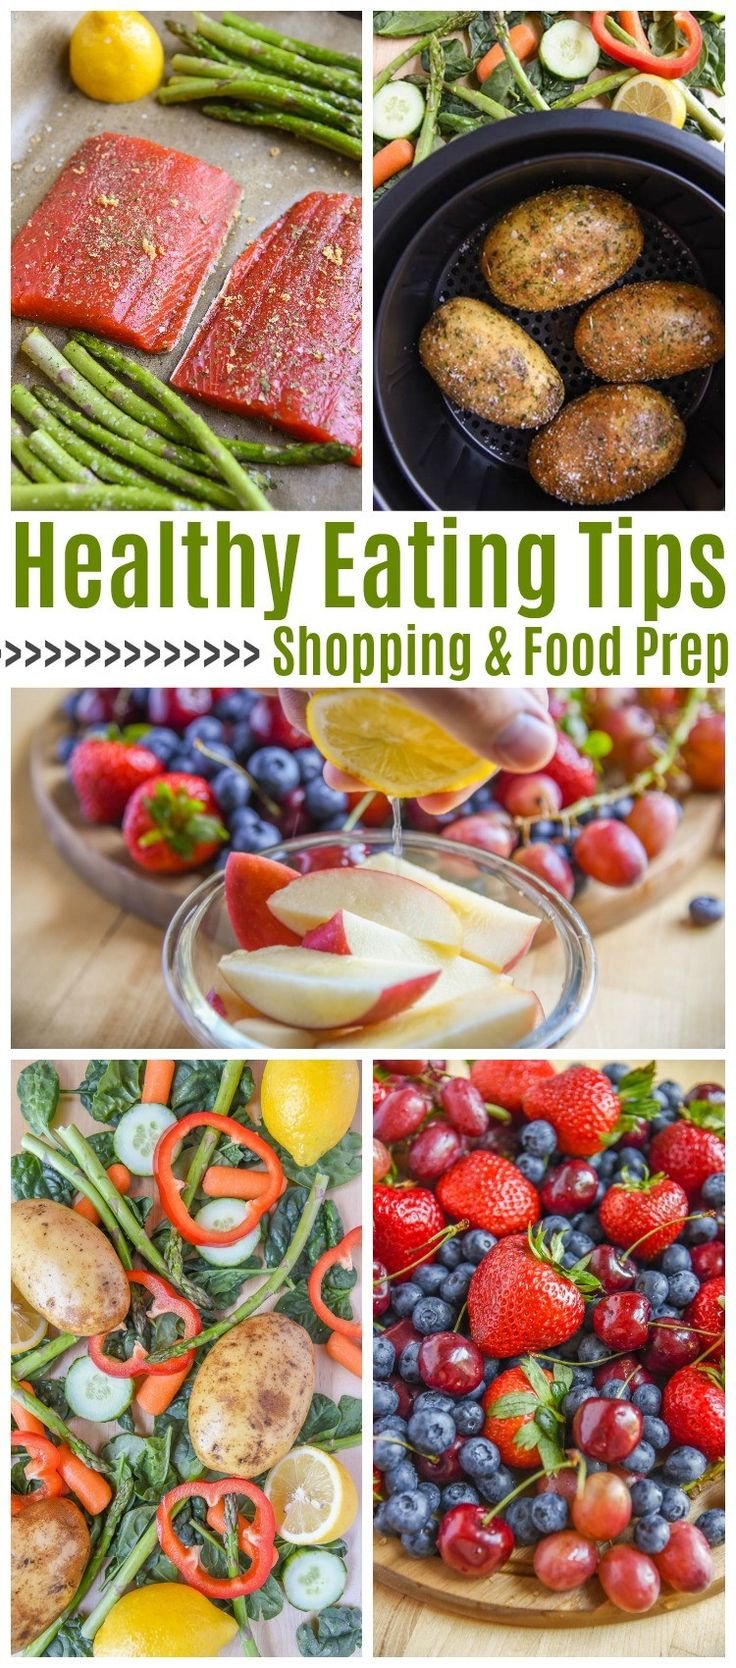 Healthy Eating Tips for shopping and food prep // buying in bulk via @KnowYourProduce